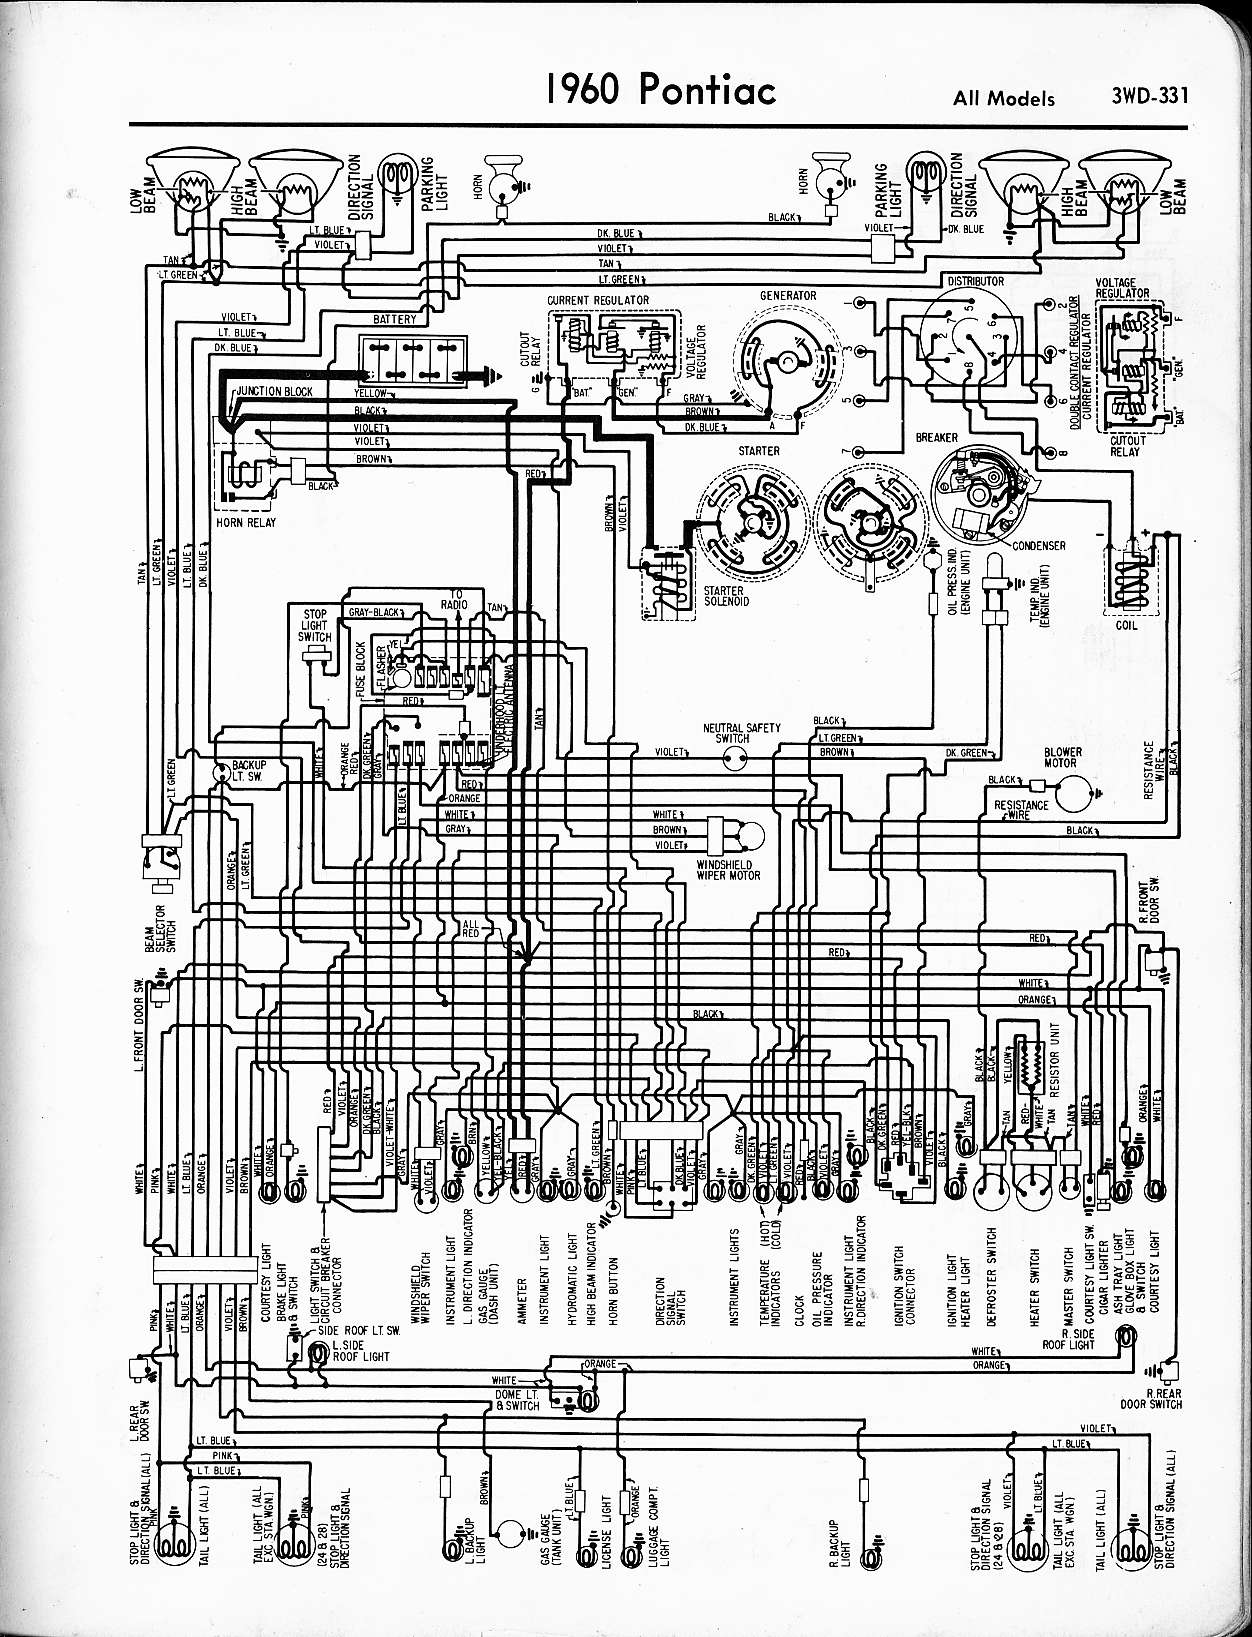 Racing Engine Diagram Wiring Diagrams Gray Marine Library Rh 99 Codingcommunity De Scooter Boat